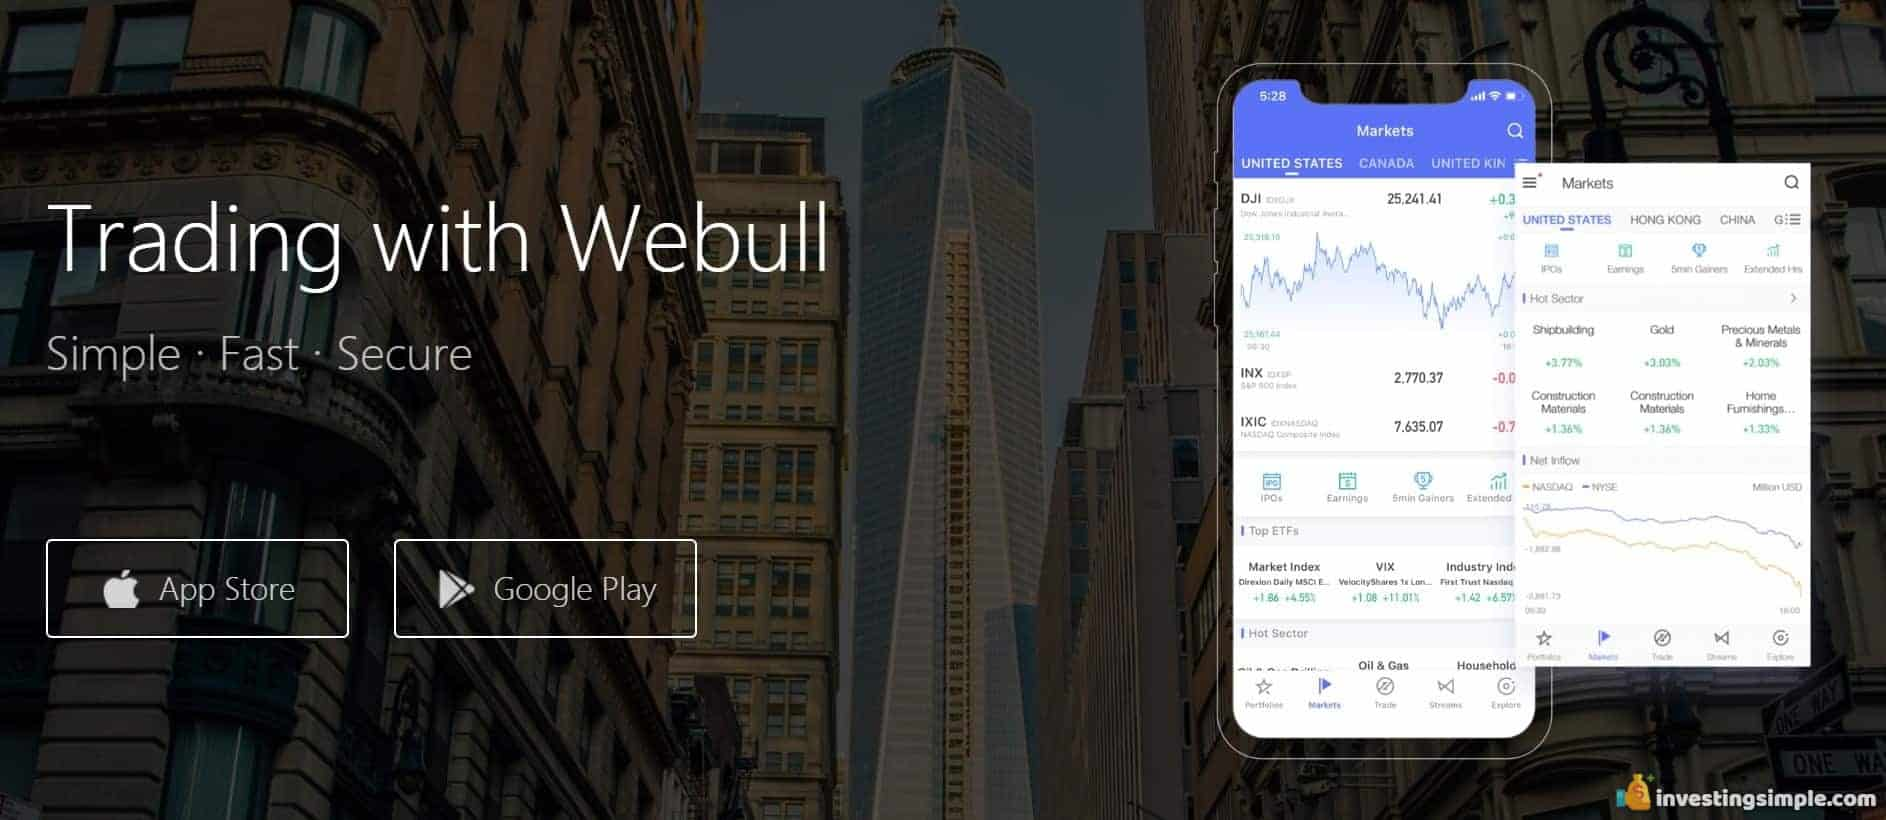 Webull review investing simple